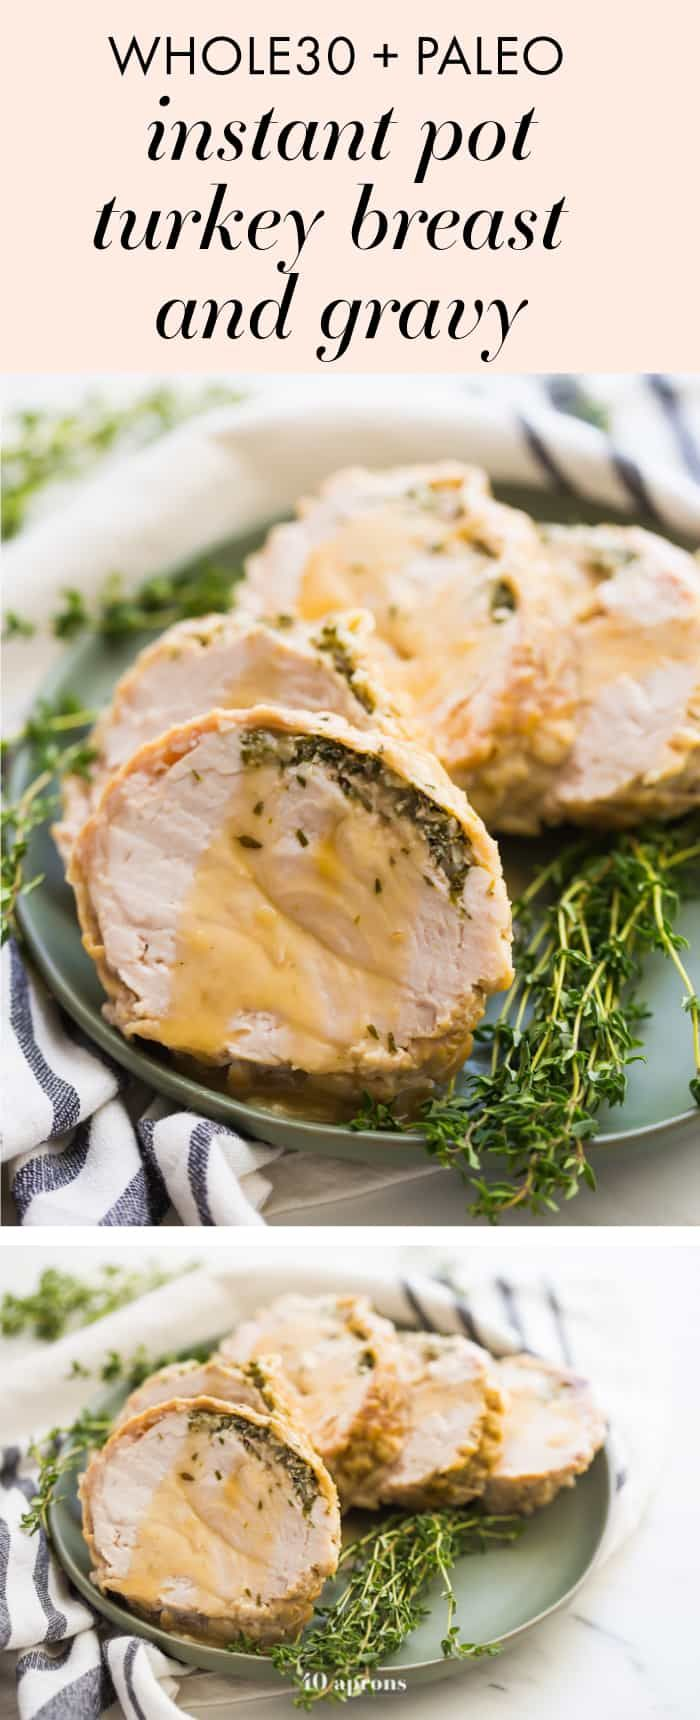 This Whole30 Instant Pot turkey breast with gravy is quick, so delicious, and totally Whole30 compliant. Brined with a garlic-herb butter under the skin, this Whole30 turkey breast and the gravy are both made in the Instant Pot, making Thanksgiving easier